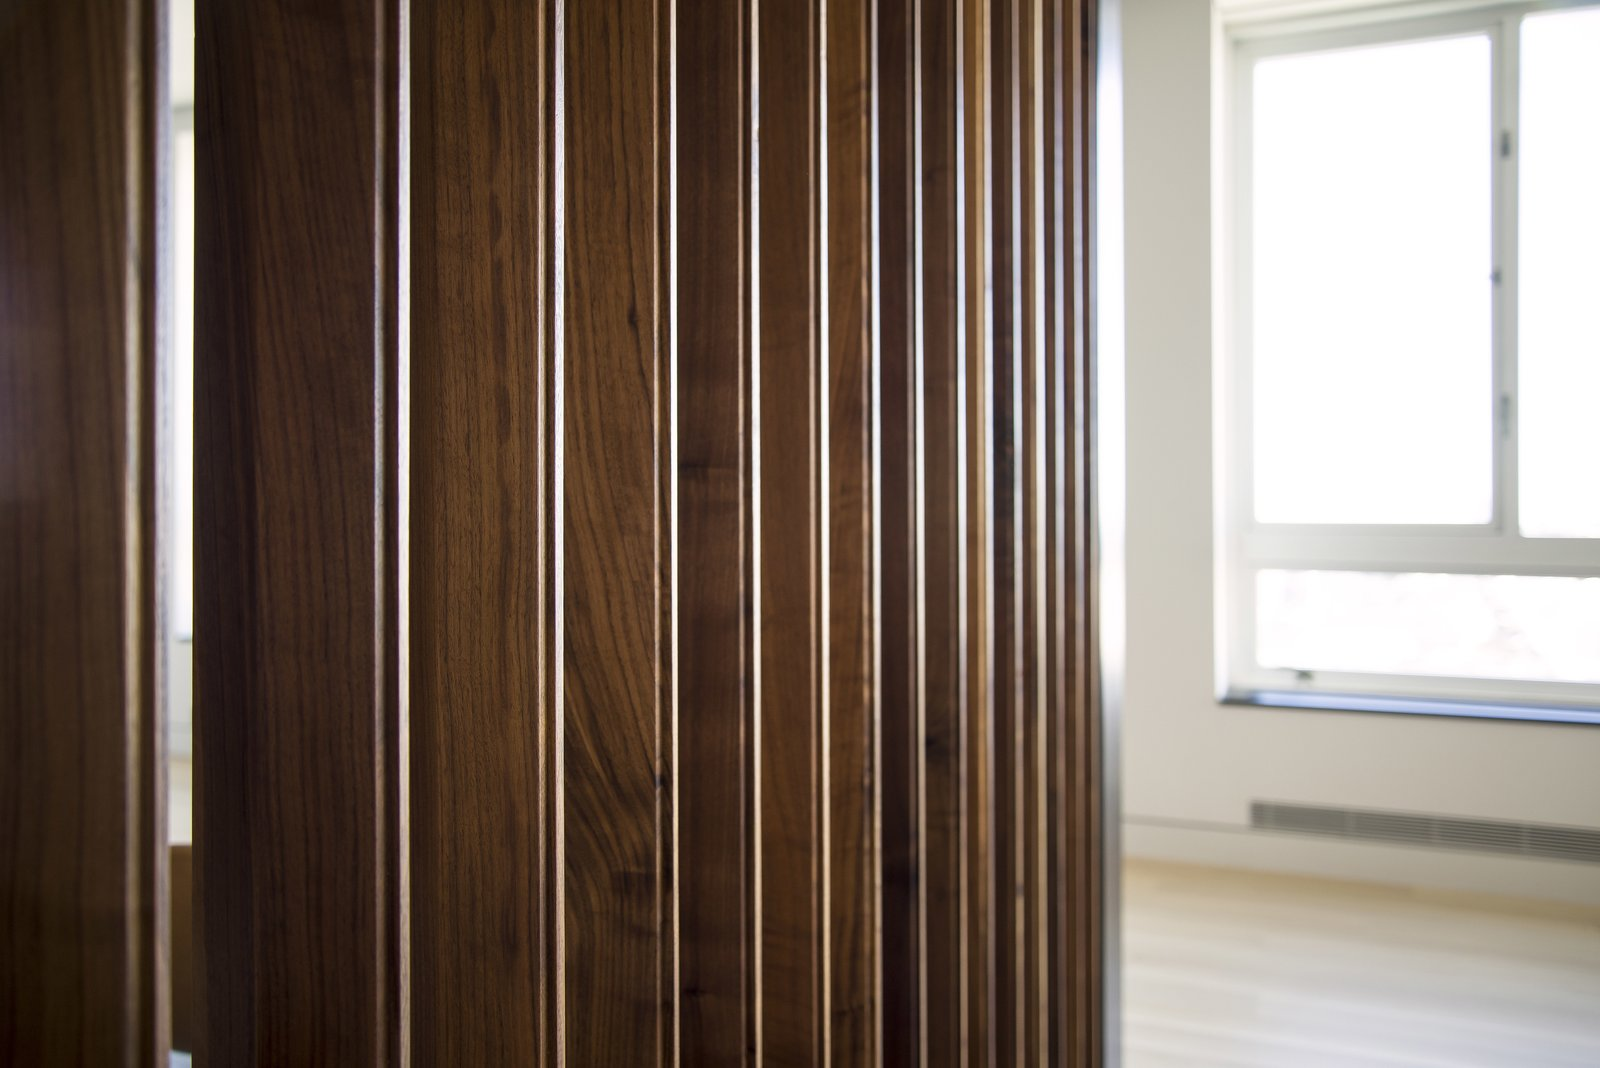 Louver Wall Detail  Nob Hill Residence by Imbue Design